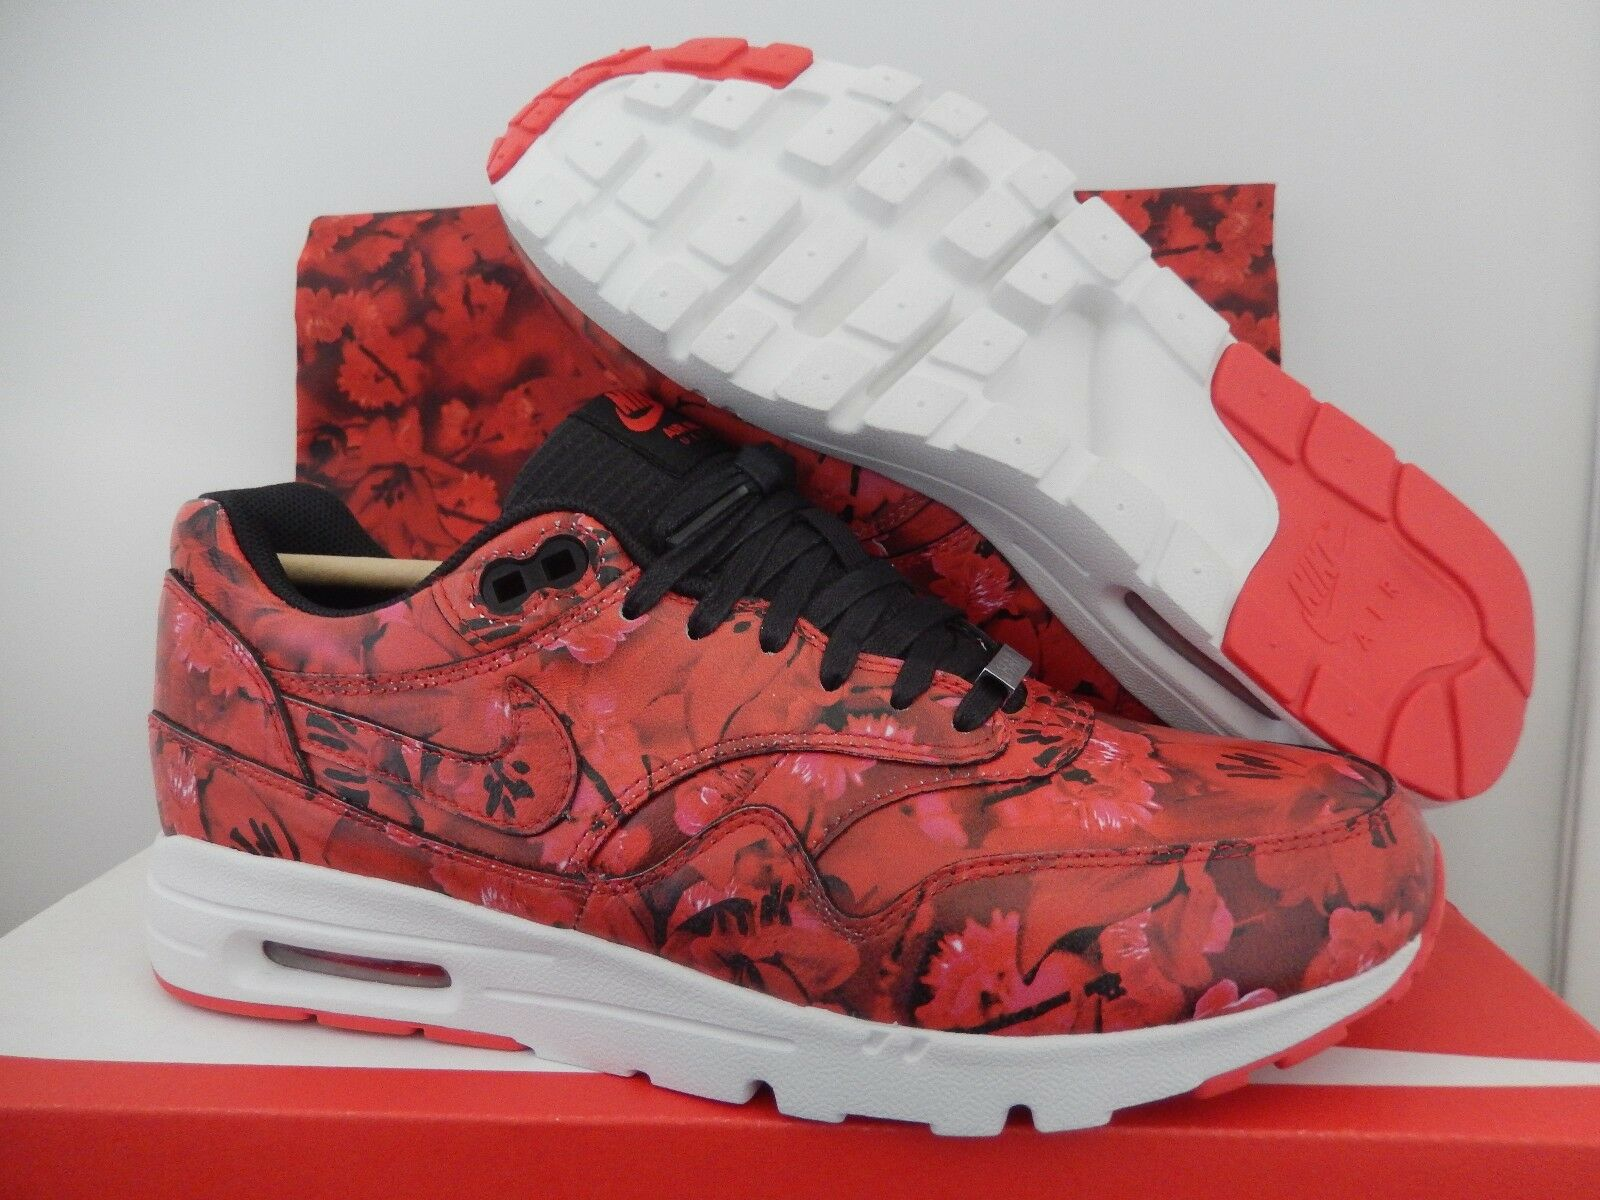 NIKE AIR MAX 1 ULTRA LOTC QS SHANGHAI CITY PACK RED Price reduction